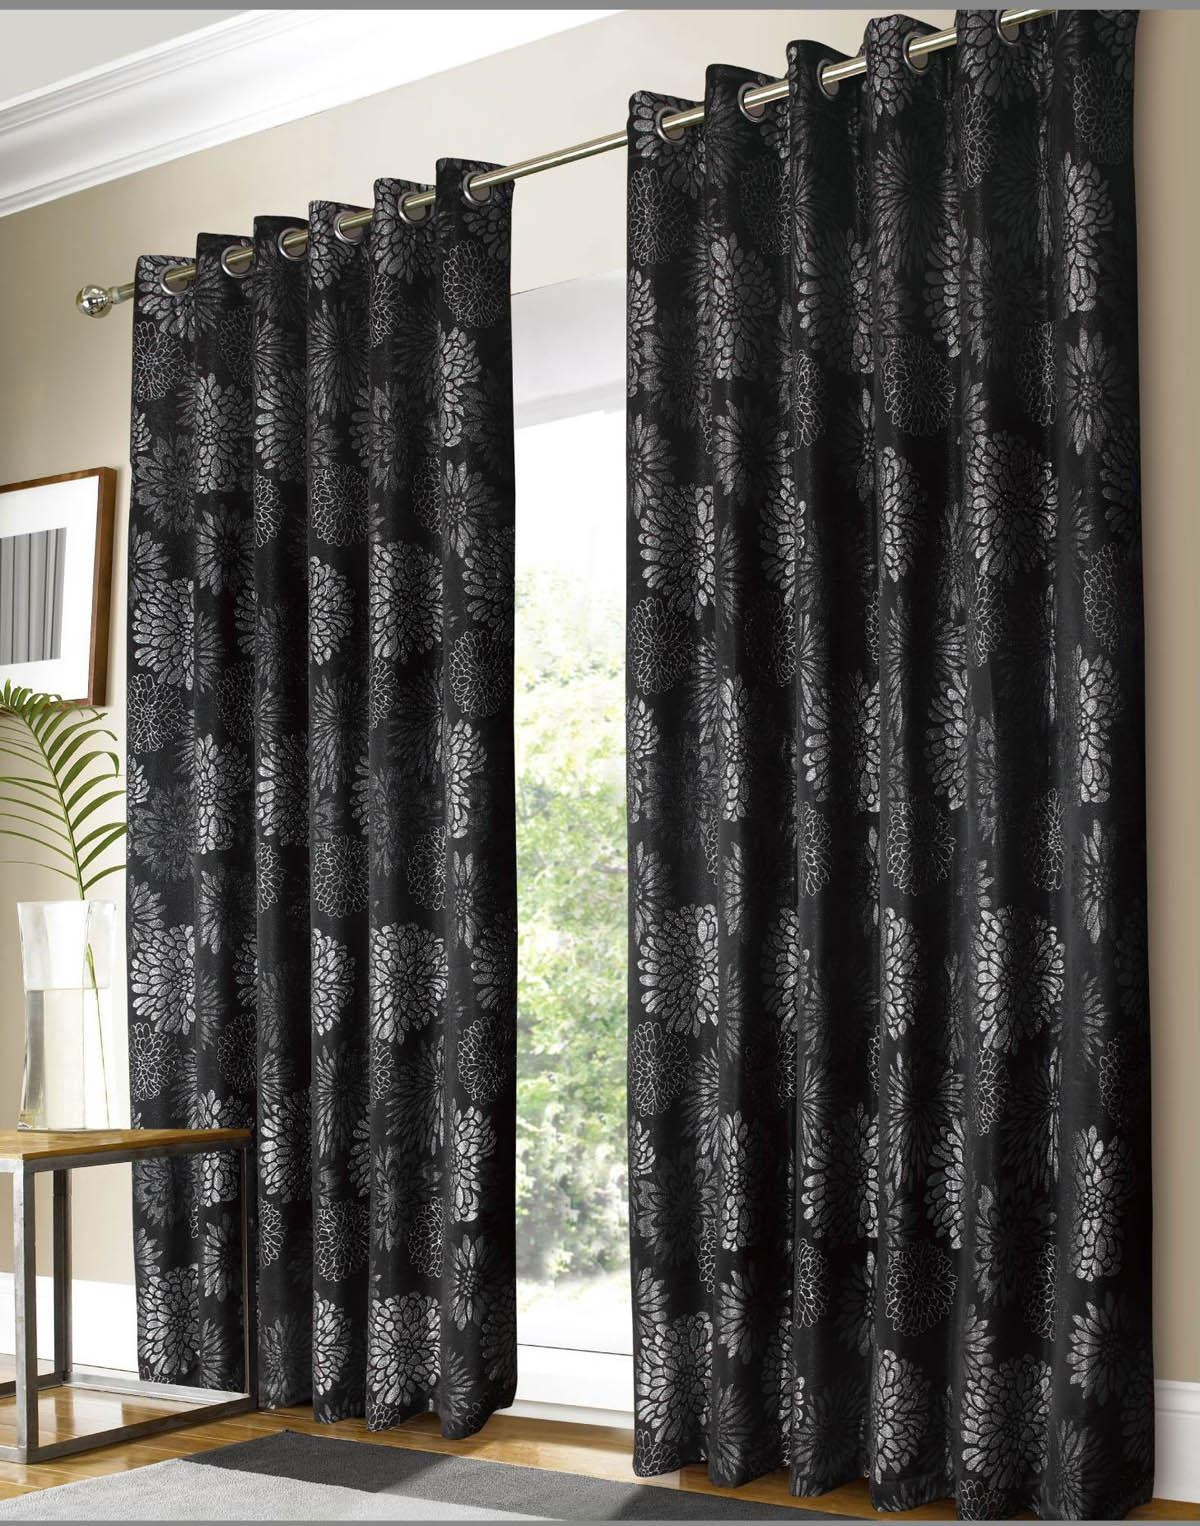 Black And Brown Curtains Home Design Ideas Gigforest Inside Black And Brown Curtains (Image 1 of 15)